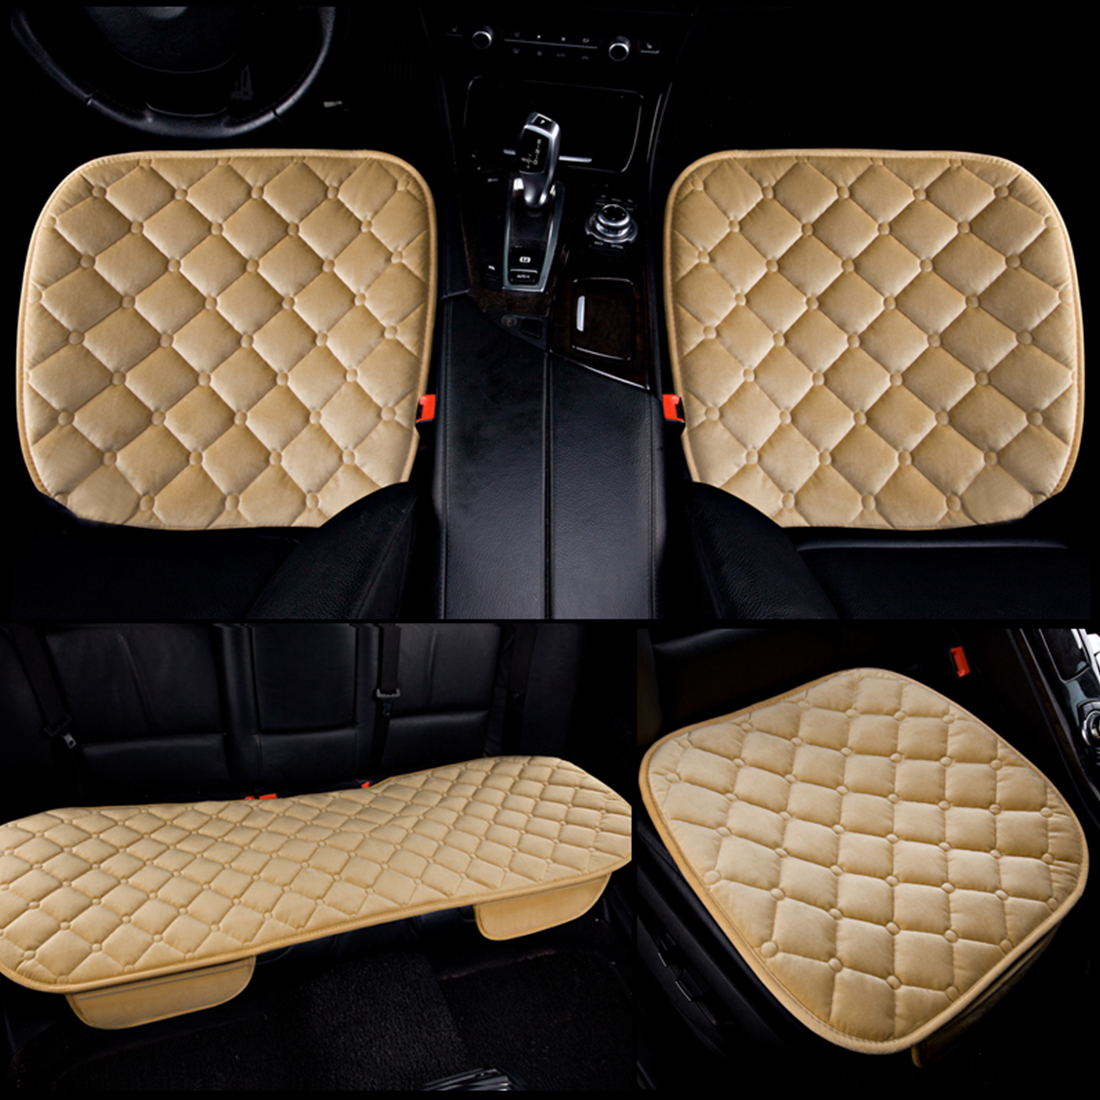 Dewtreetali Universal Velvet Car Seat Cushion Set Auto Car Seat Protector Seat Cover Winter for Car Accessories Car-styling dewtreetali universal automoblies seat cover four seaons car seat protector full set car accessories car styling for vw bmw audi